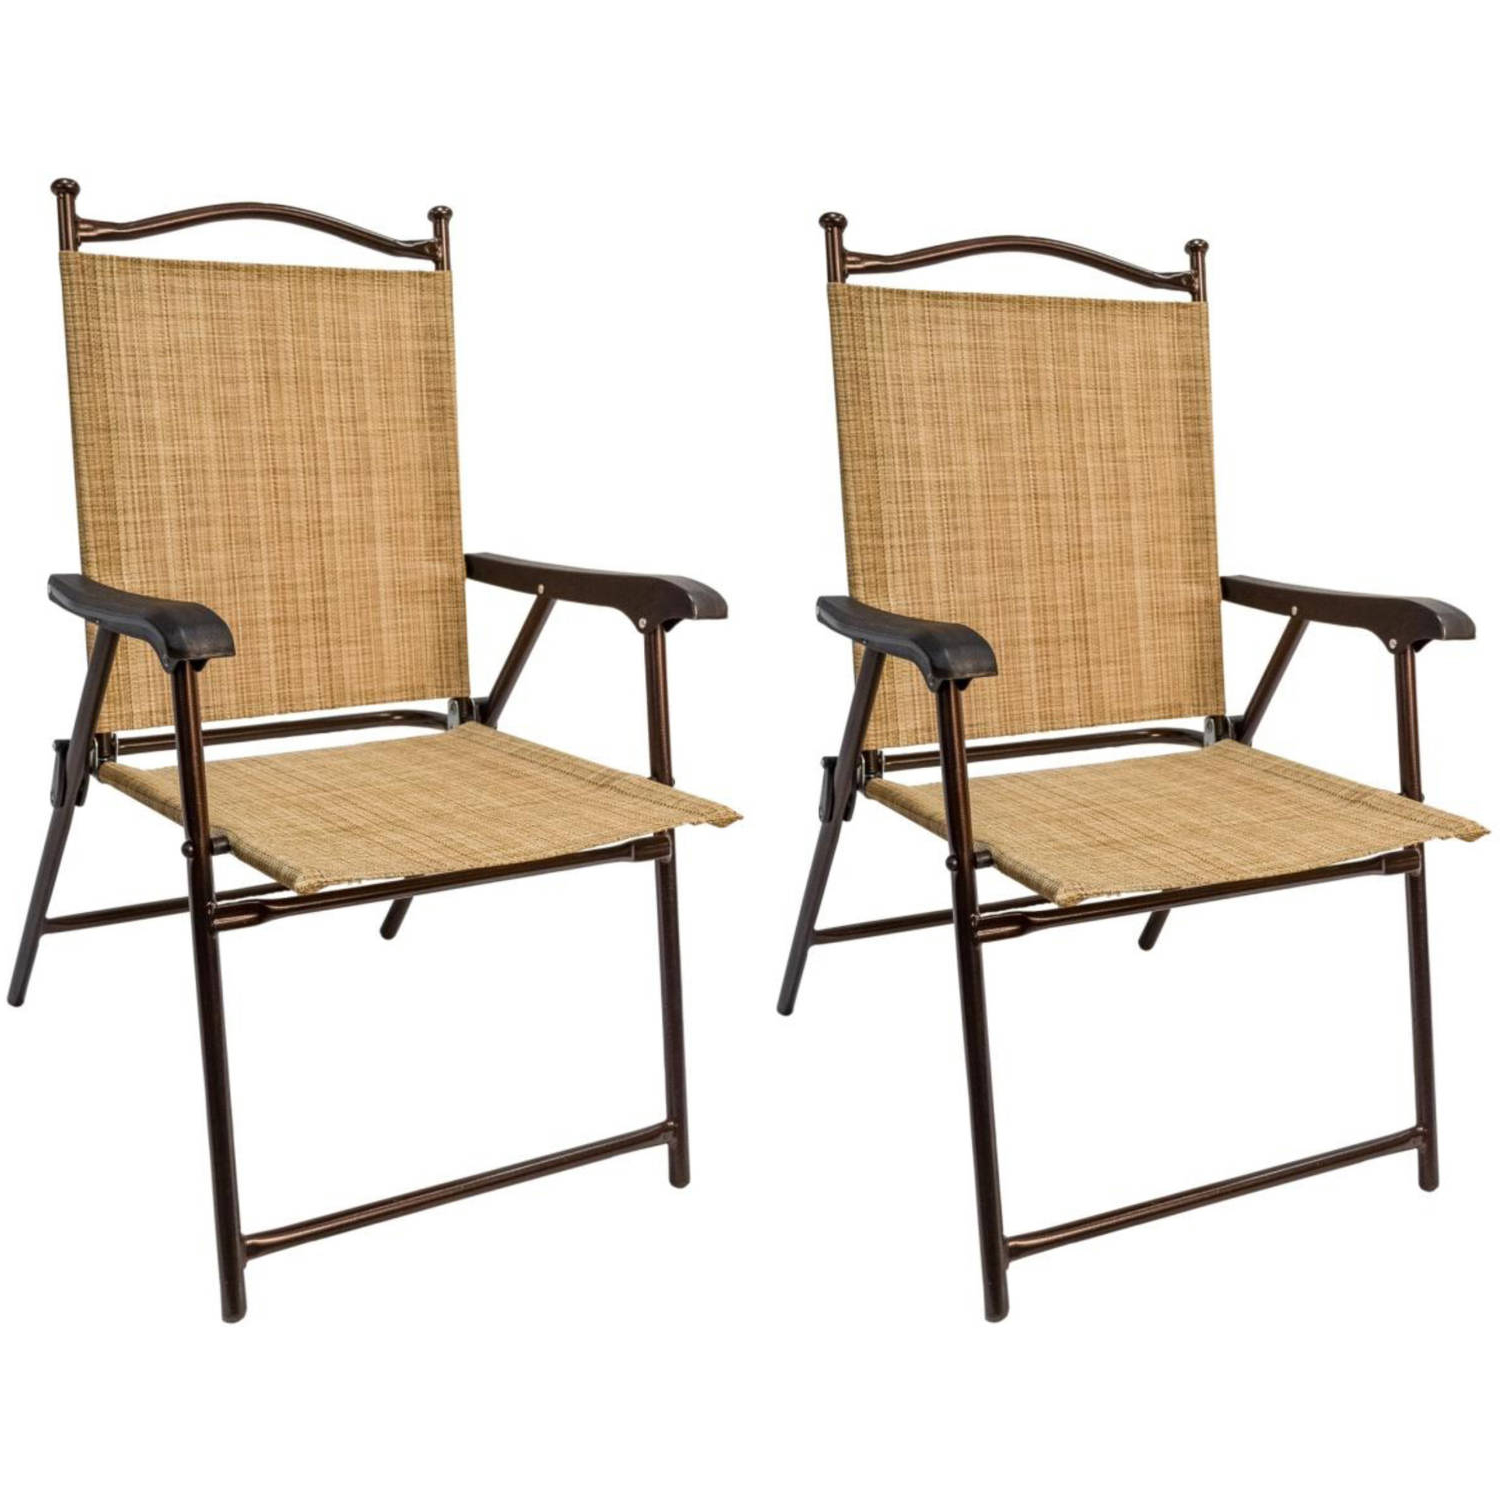 28 Outdoor Sling Chairs Blue, Sling Chair Patio Furniture In Trendy Canvas Patio Sling Chairs (Gallery 18 of 25)